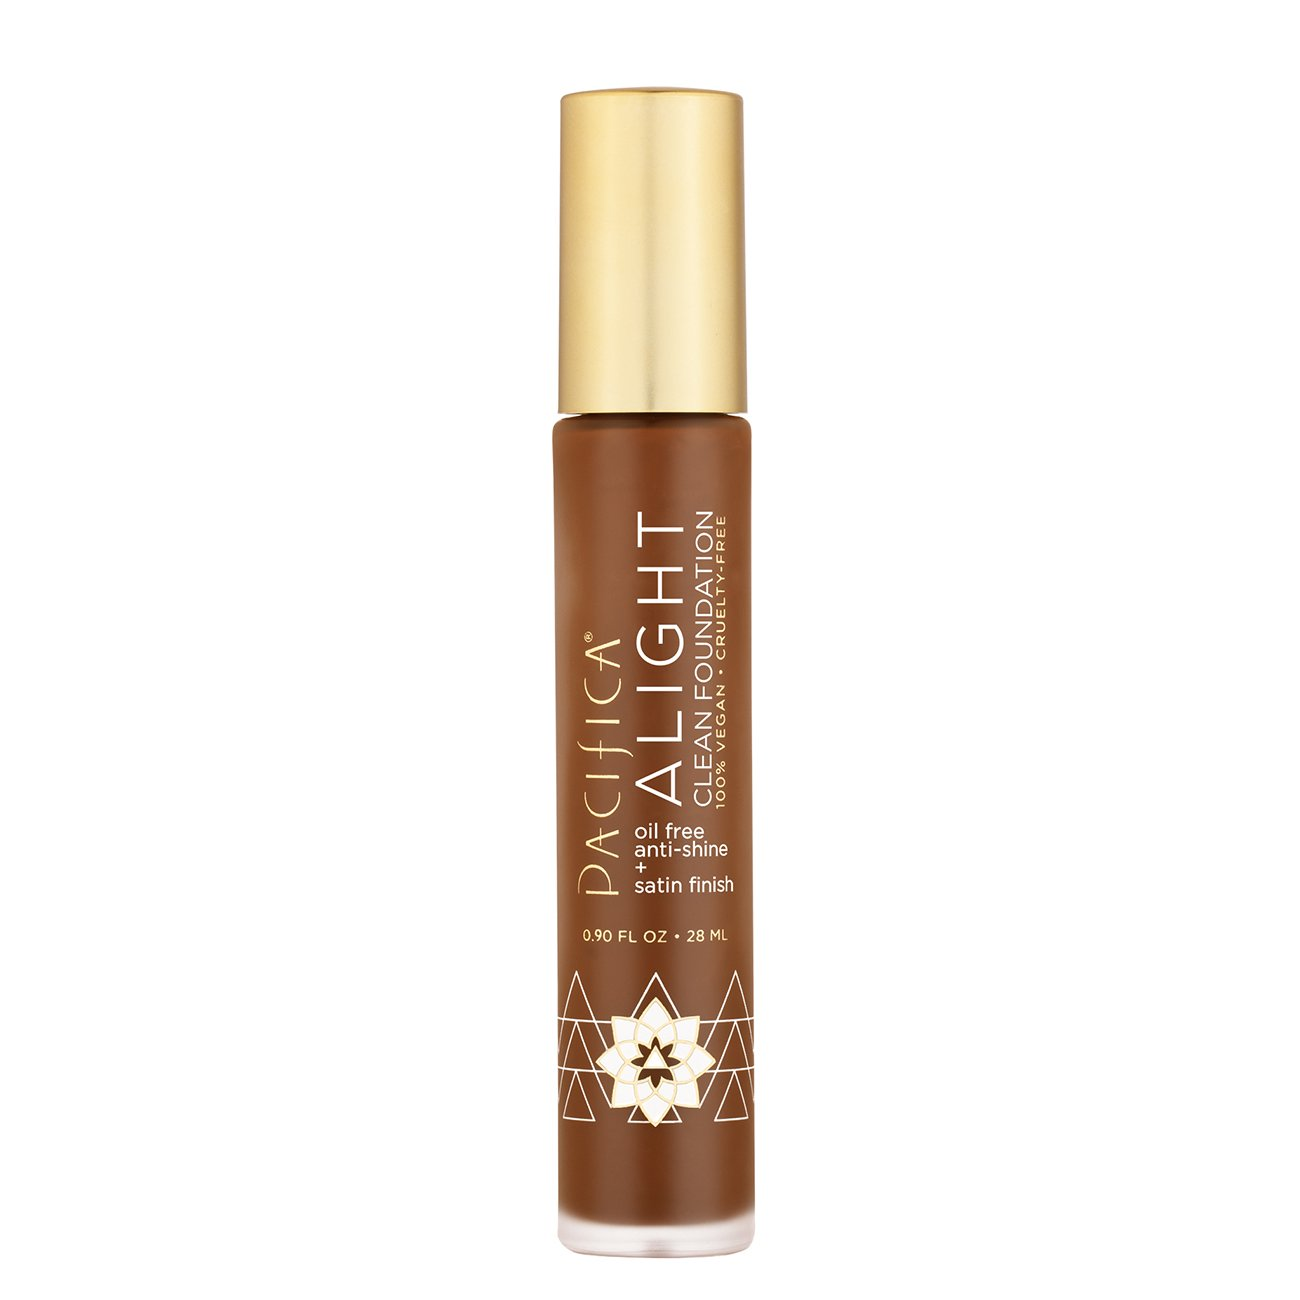 Alight Clean Foundation - Makeup - Pacifica Beauty